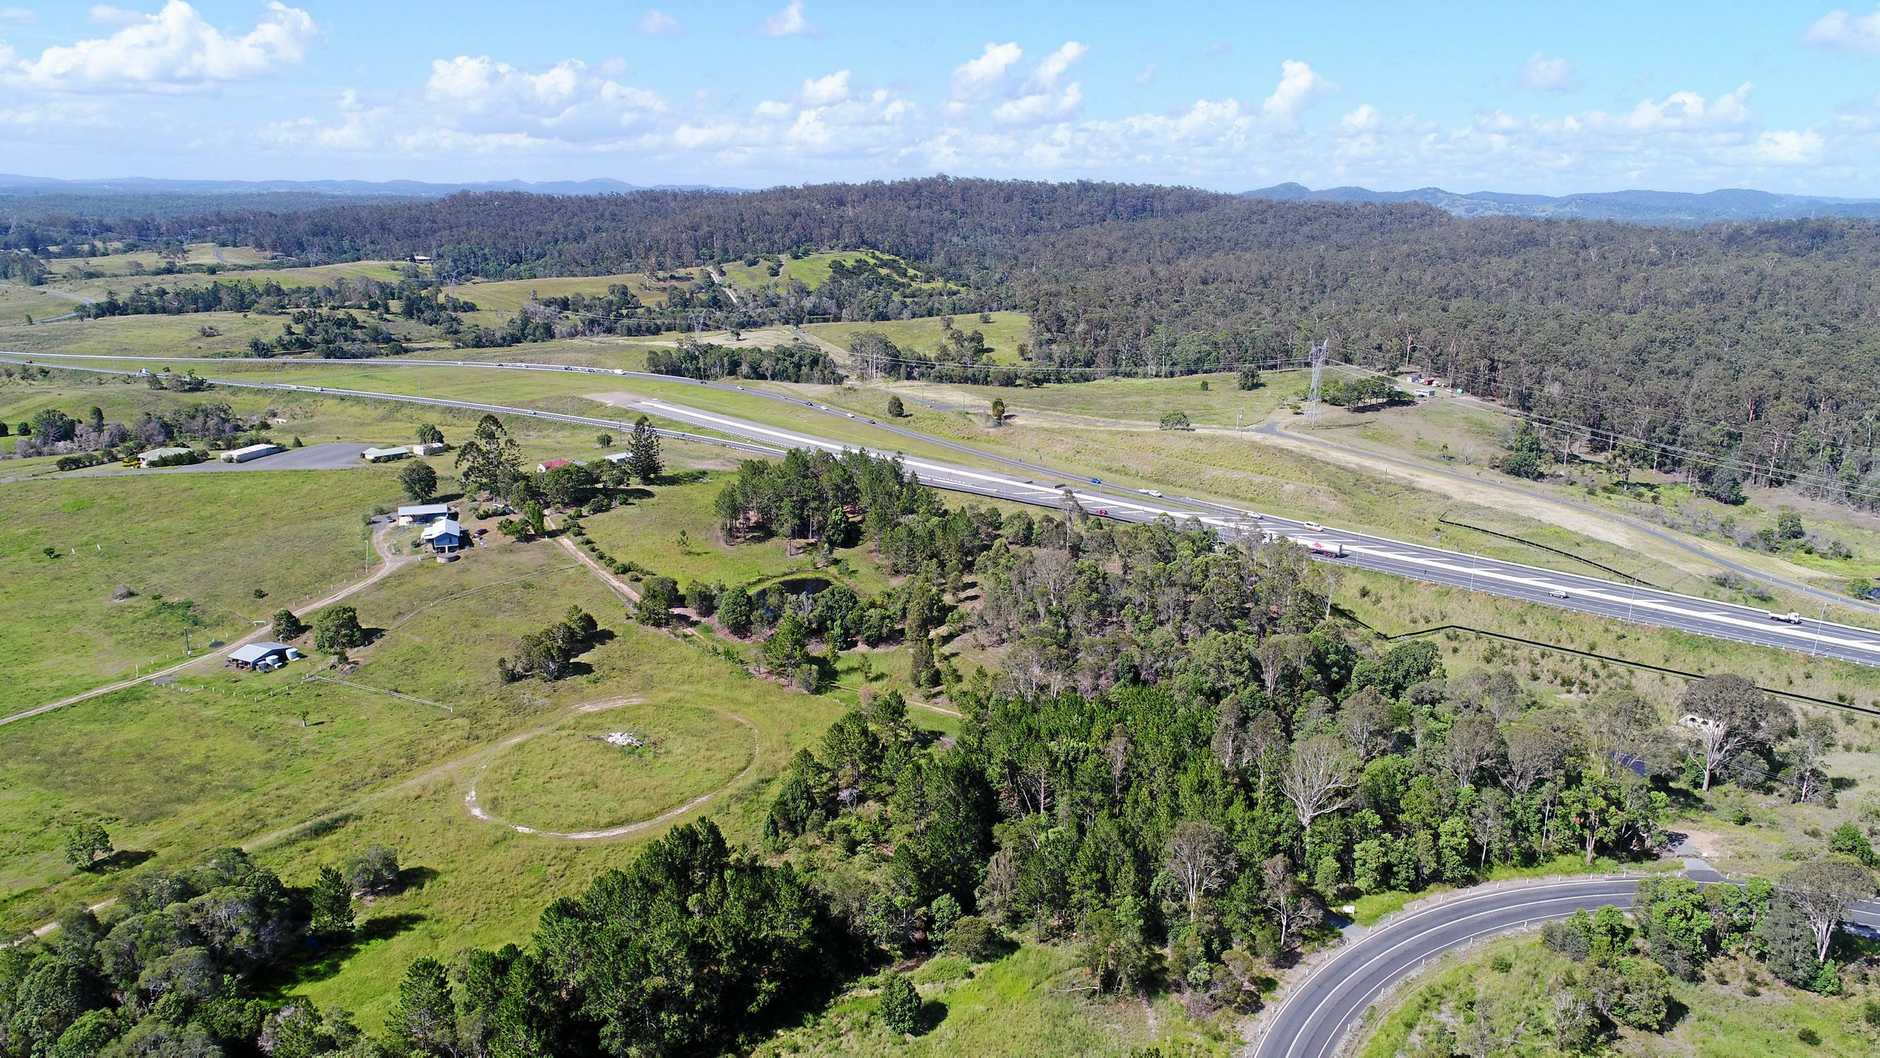 The end of Section C and starting point of Section D (Gympie Bypass) of the Bruce Highway.